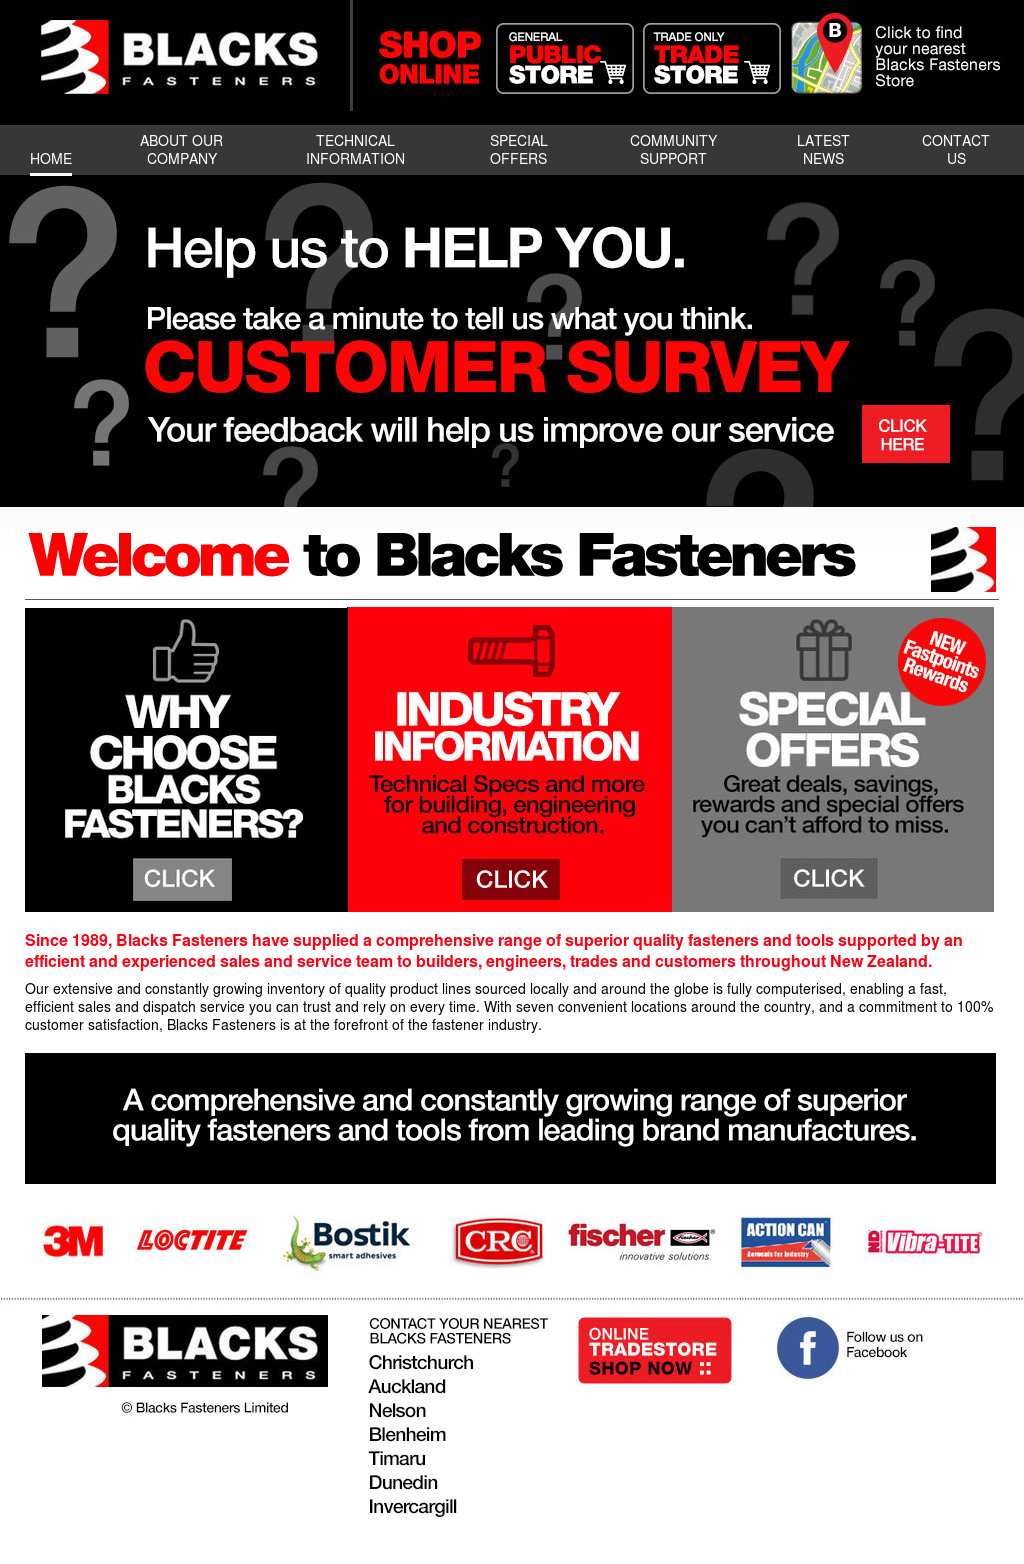 Blacks Fasteners Competitors, Revenue and Employees - Owler Company